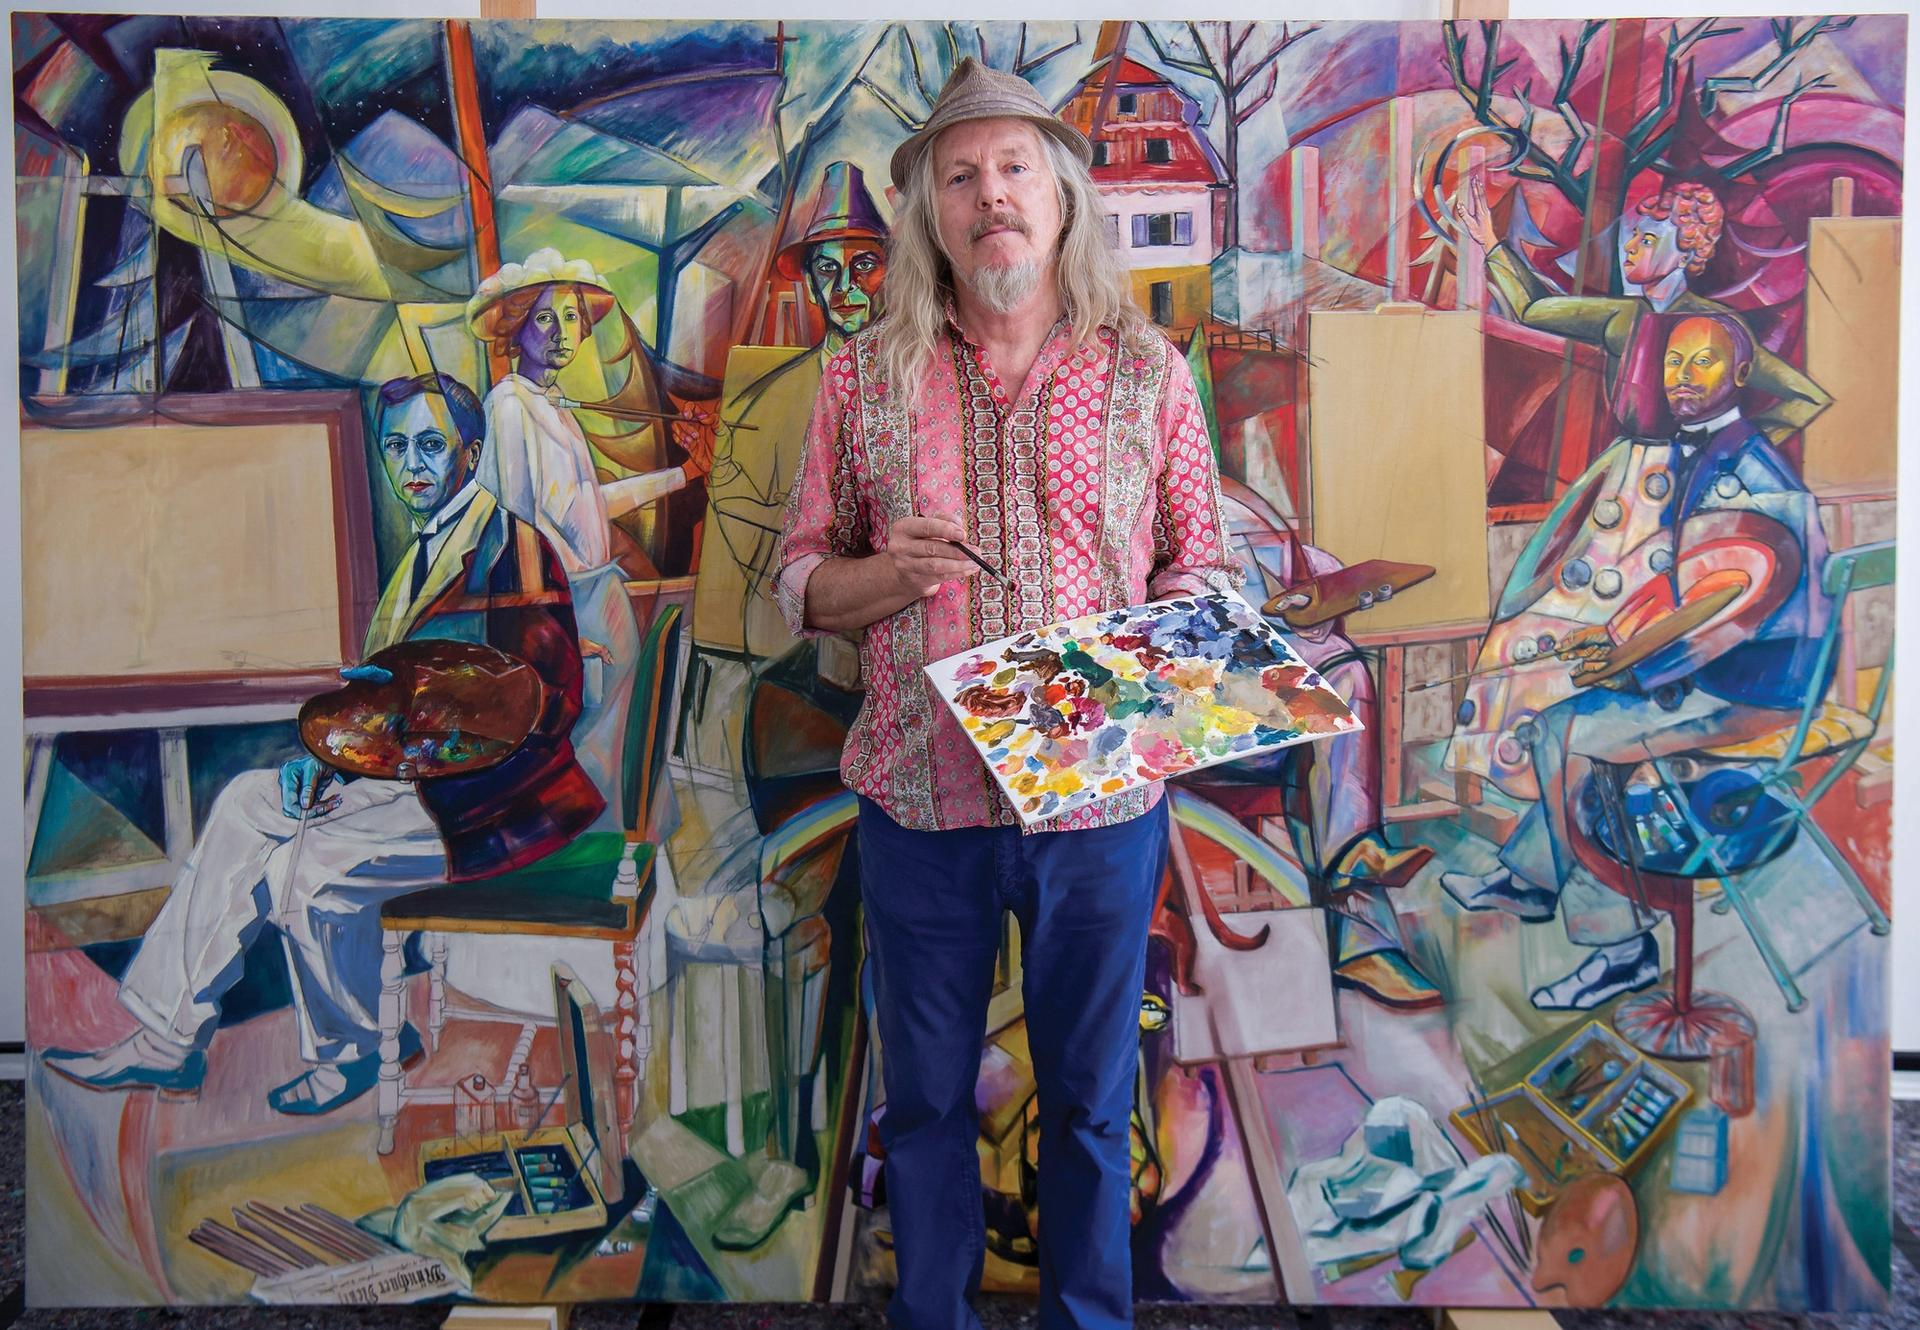 The painter Wolfgang Beltracchi stands in front Gruppenbild der blauen Reiter (group picture of the blue riders), a painting he is working on in Munich, Germany, 24 August 2017 Photo: Peter Kneffel/dpa/Alamy Live News